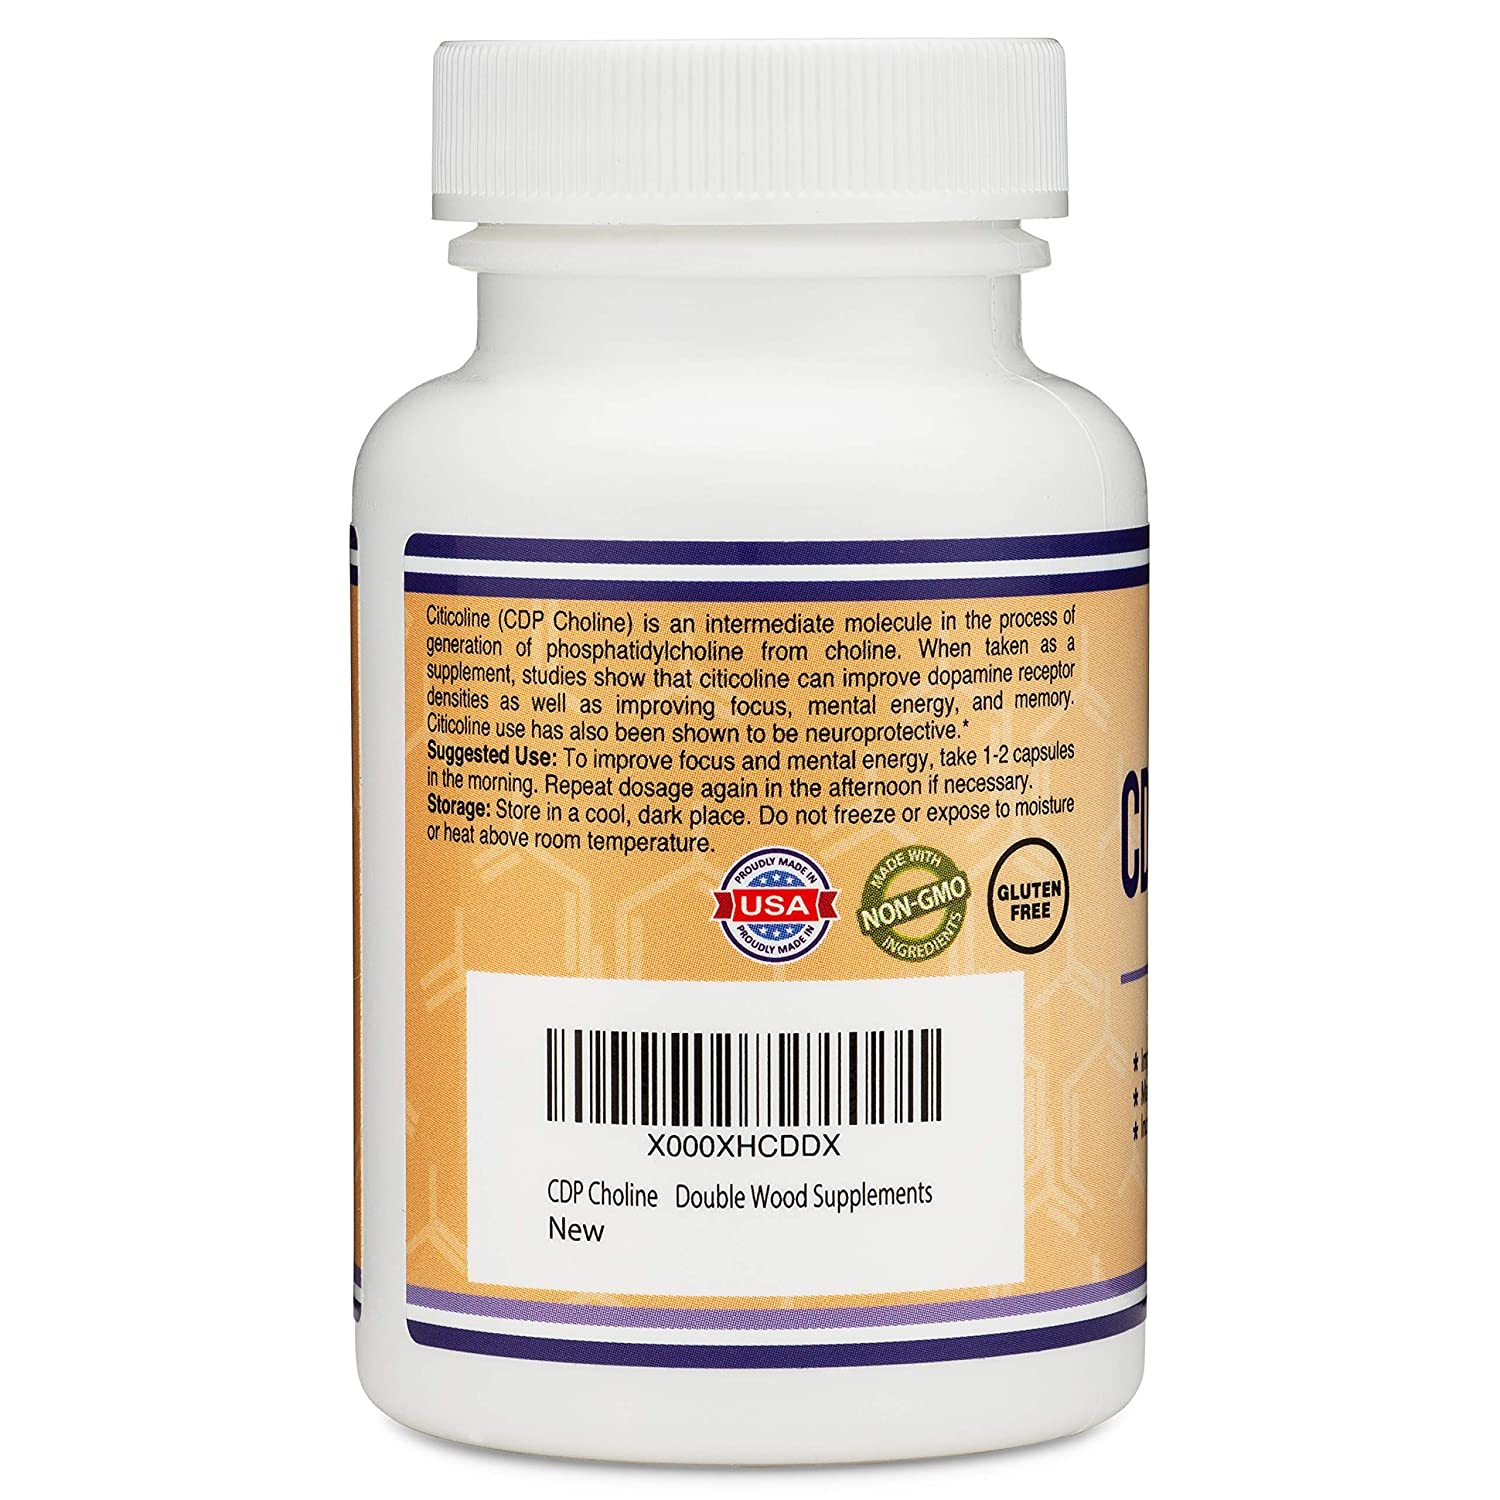 CDP Choline (Citicoline) Supplement, Pharmaceutical Grade, Made in USA (60  Capsules 300mg)